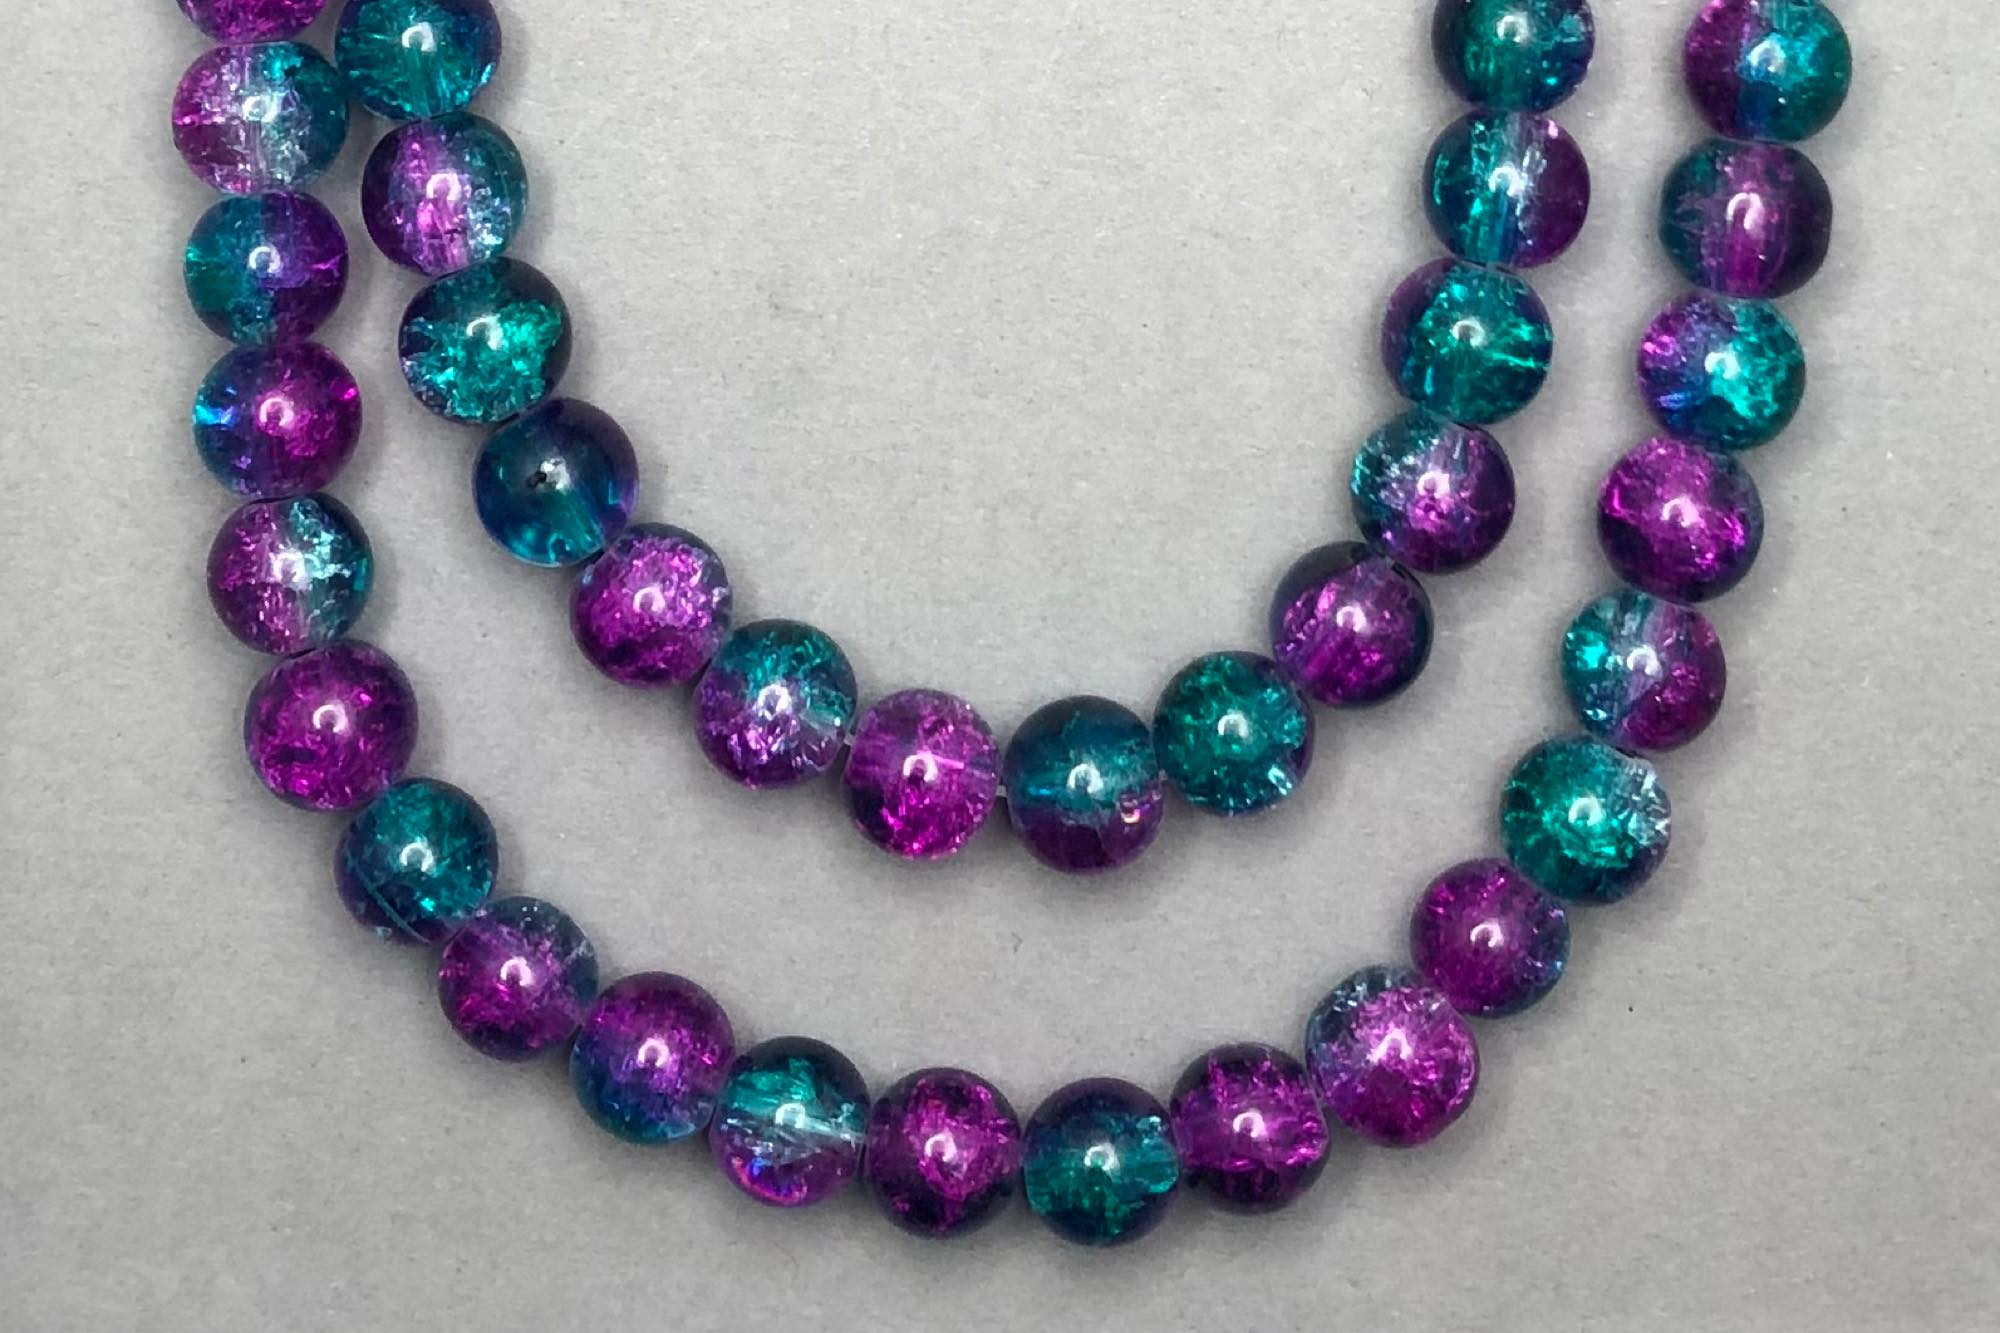 Teal/Magenta Crackle Glass Beads